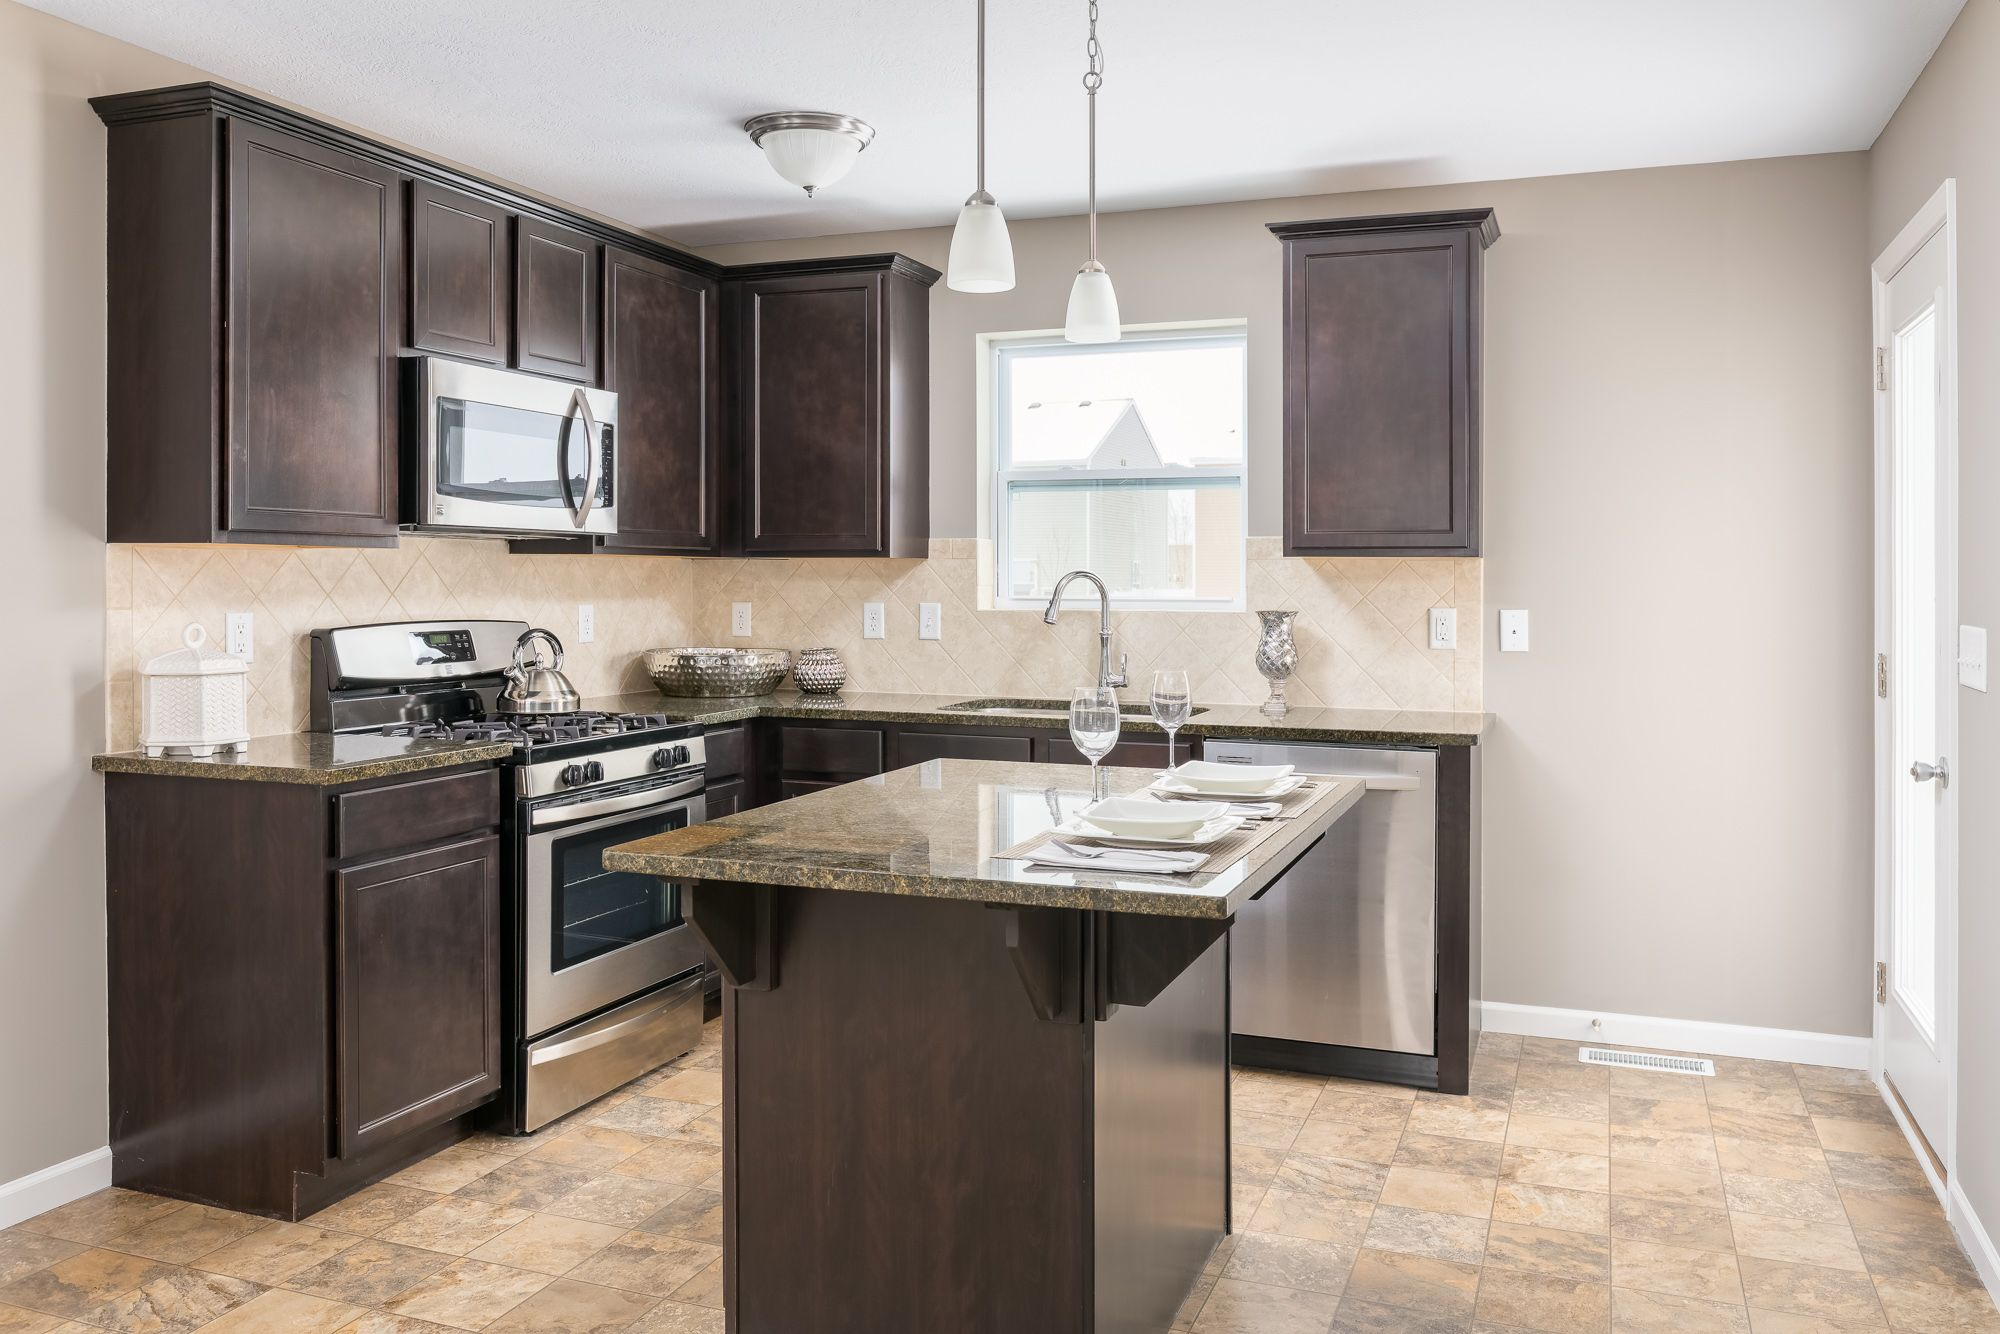 Kitchen featured in the Elements 1400 By Allen Edwin Homes in Benton Harbor, MI